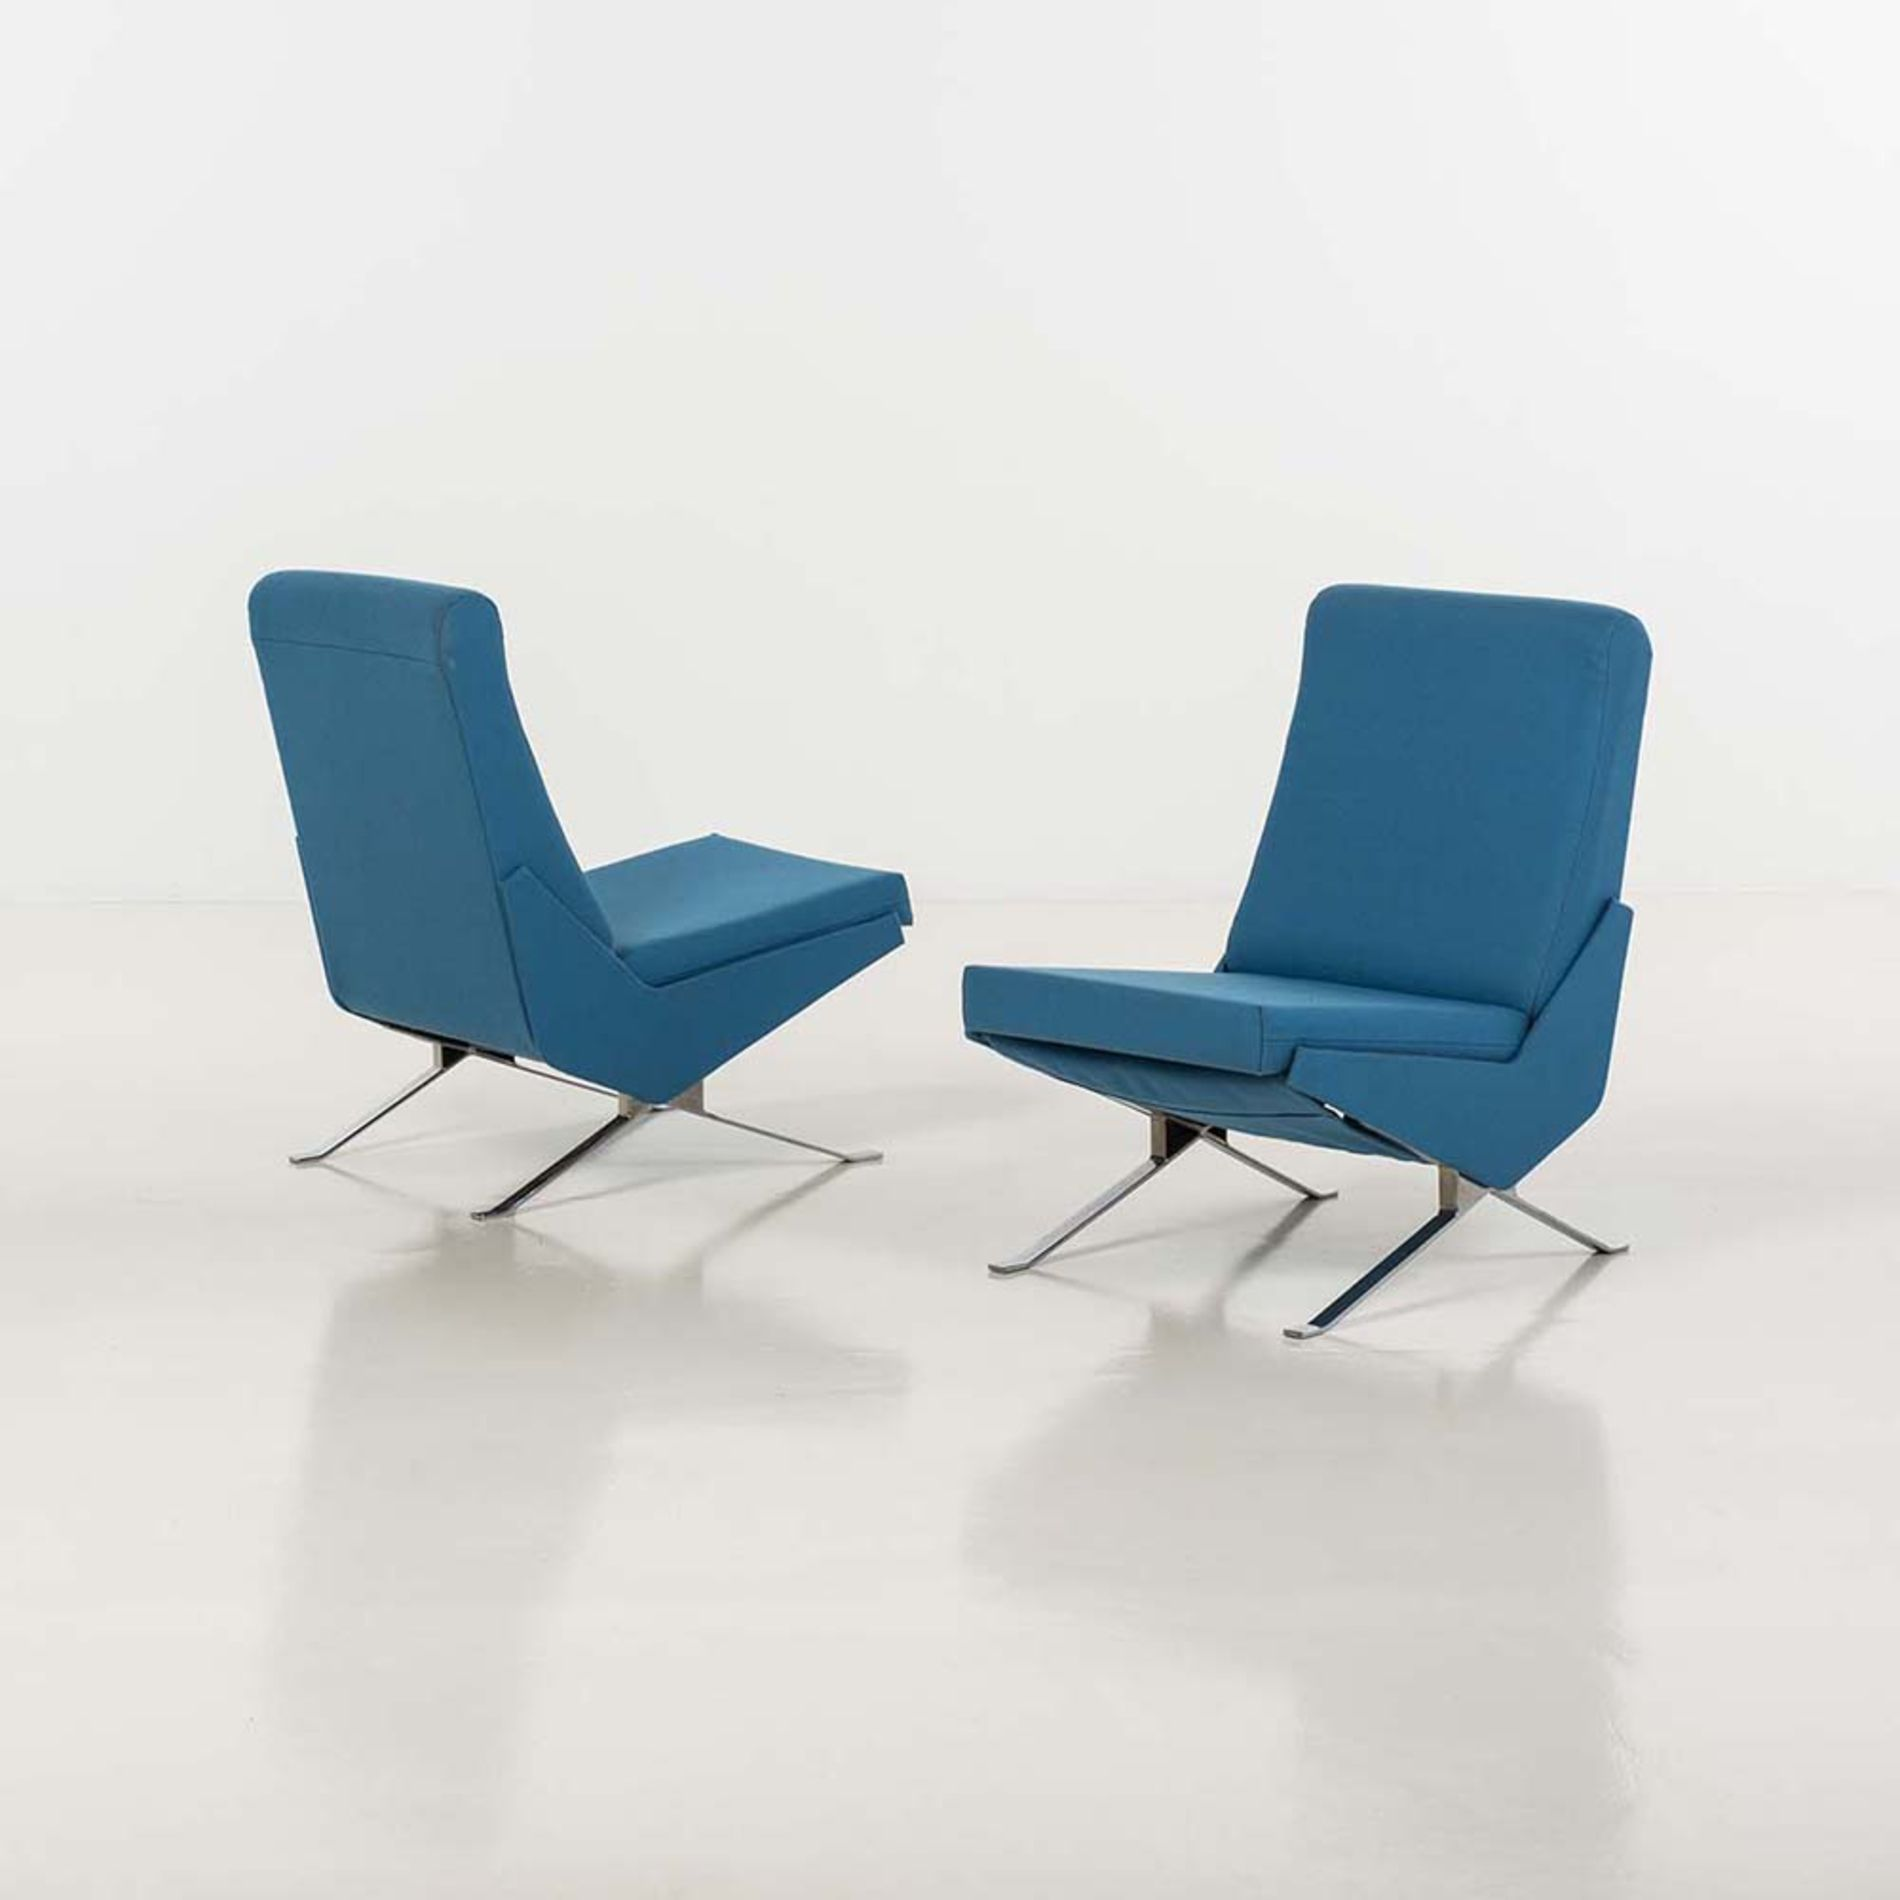 Fauteuils Airborne Pierre Guariche Troika Chairs For Airborne 1958 Chaired